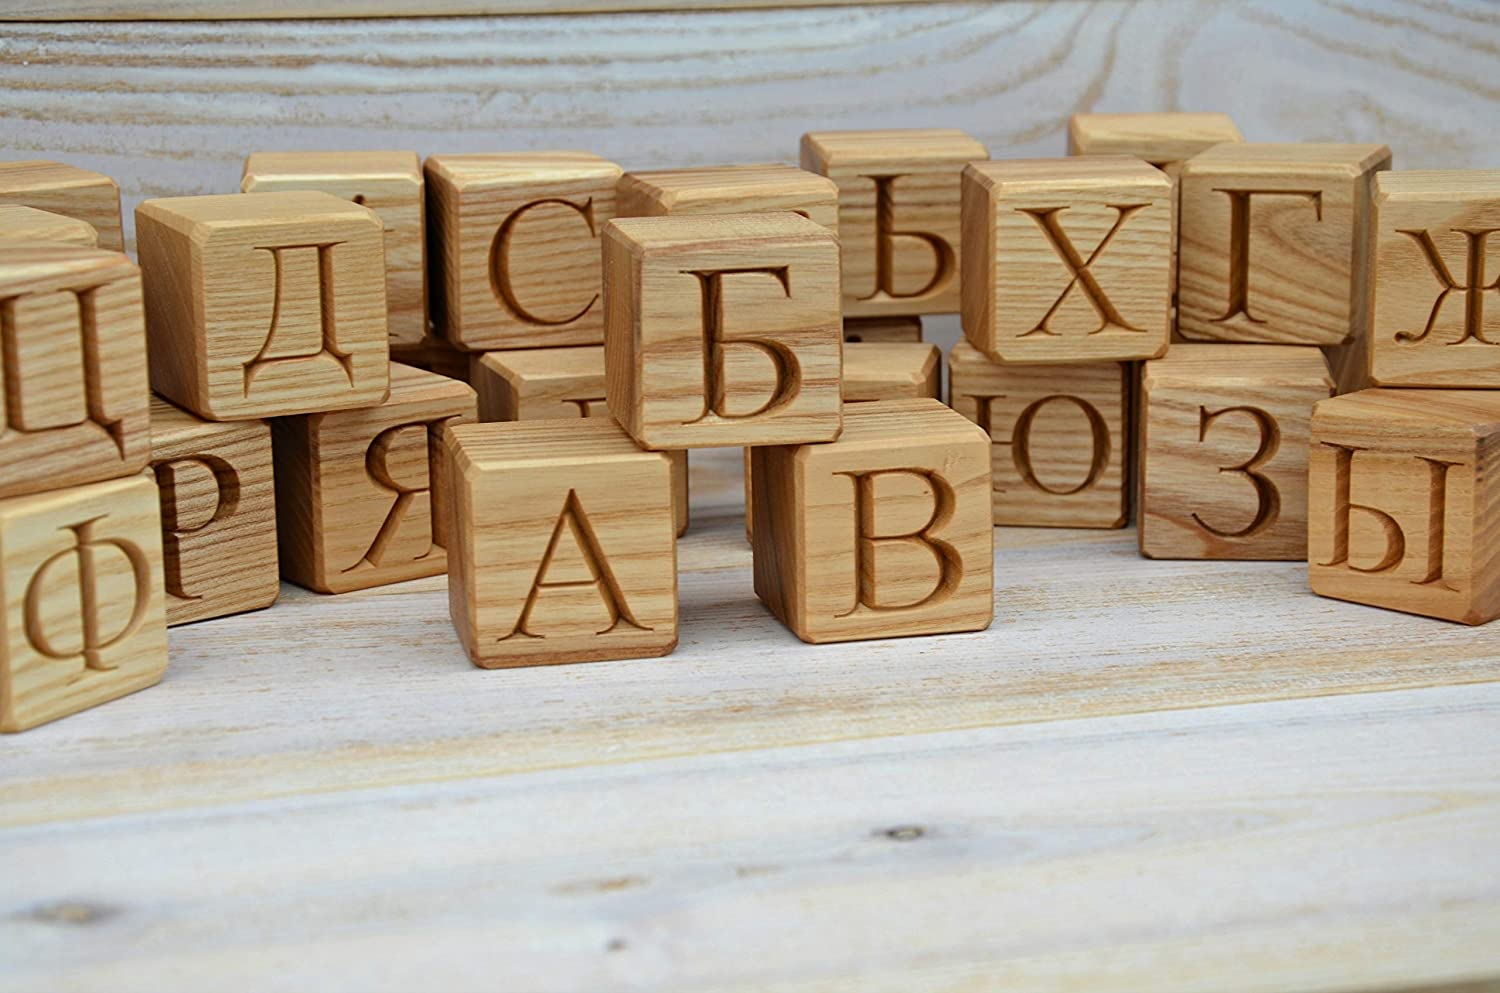 33 Russian Alphabet Wood Blocks - ABC Wood Block Learning Wood Toy - Personalized Letter Blocks - Baby Shower Gift - Back To School Gift - Christmas Gift & Amazon.com: 33 Russian Alphabet Wood Blocks - ABC Wood Block ...